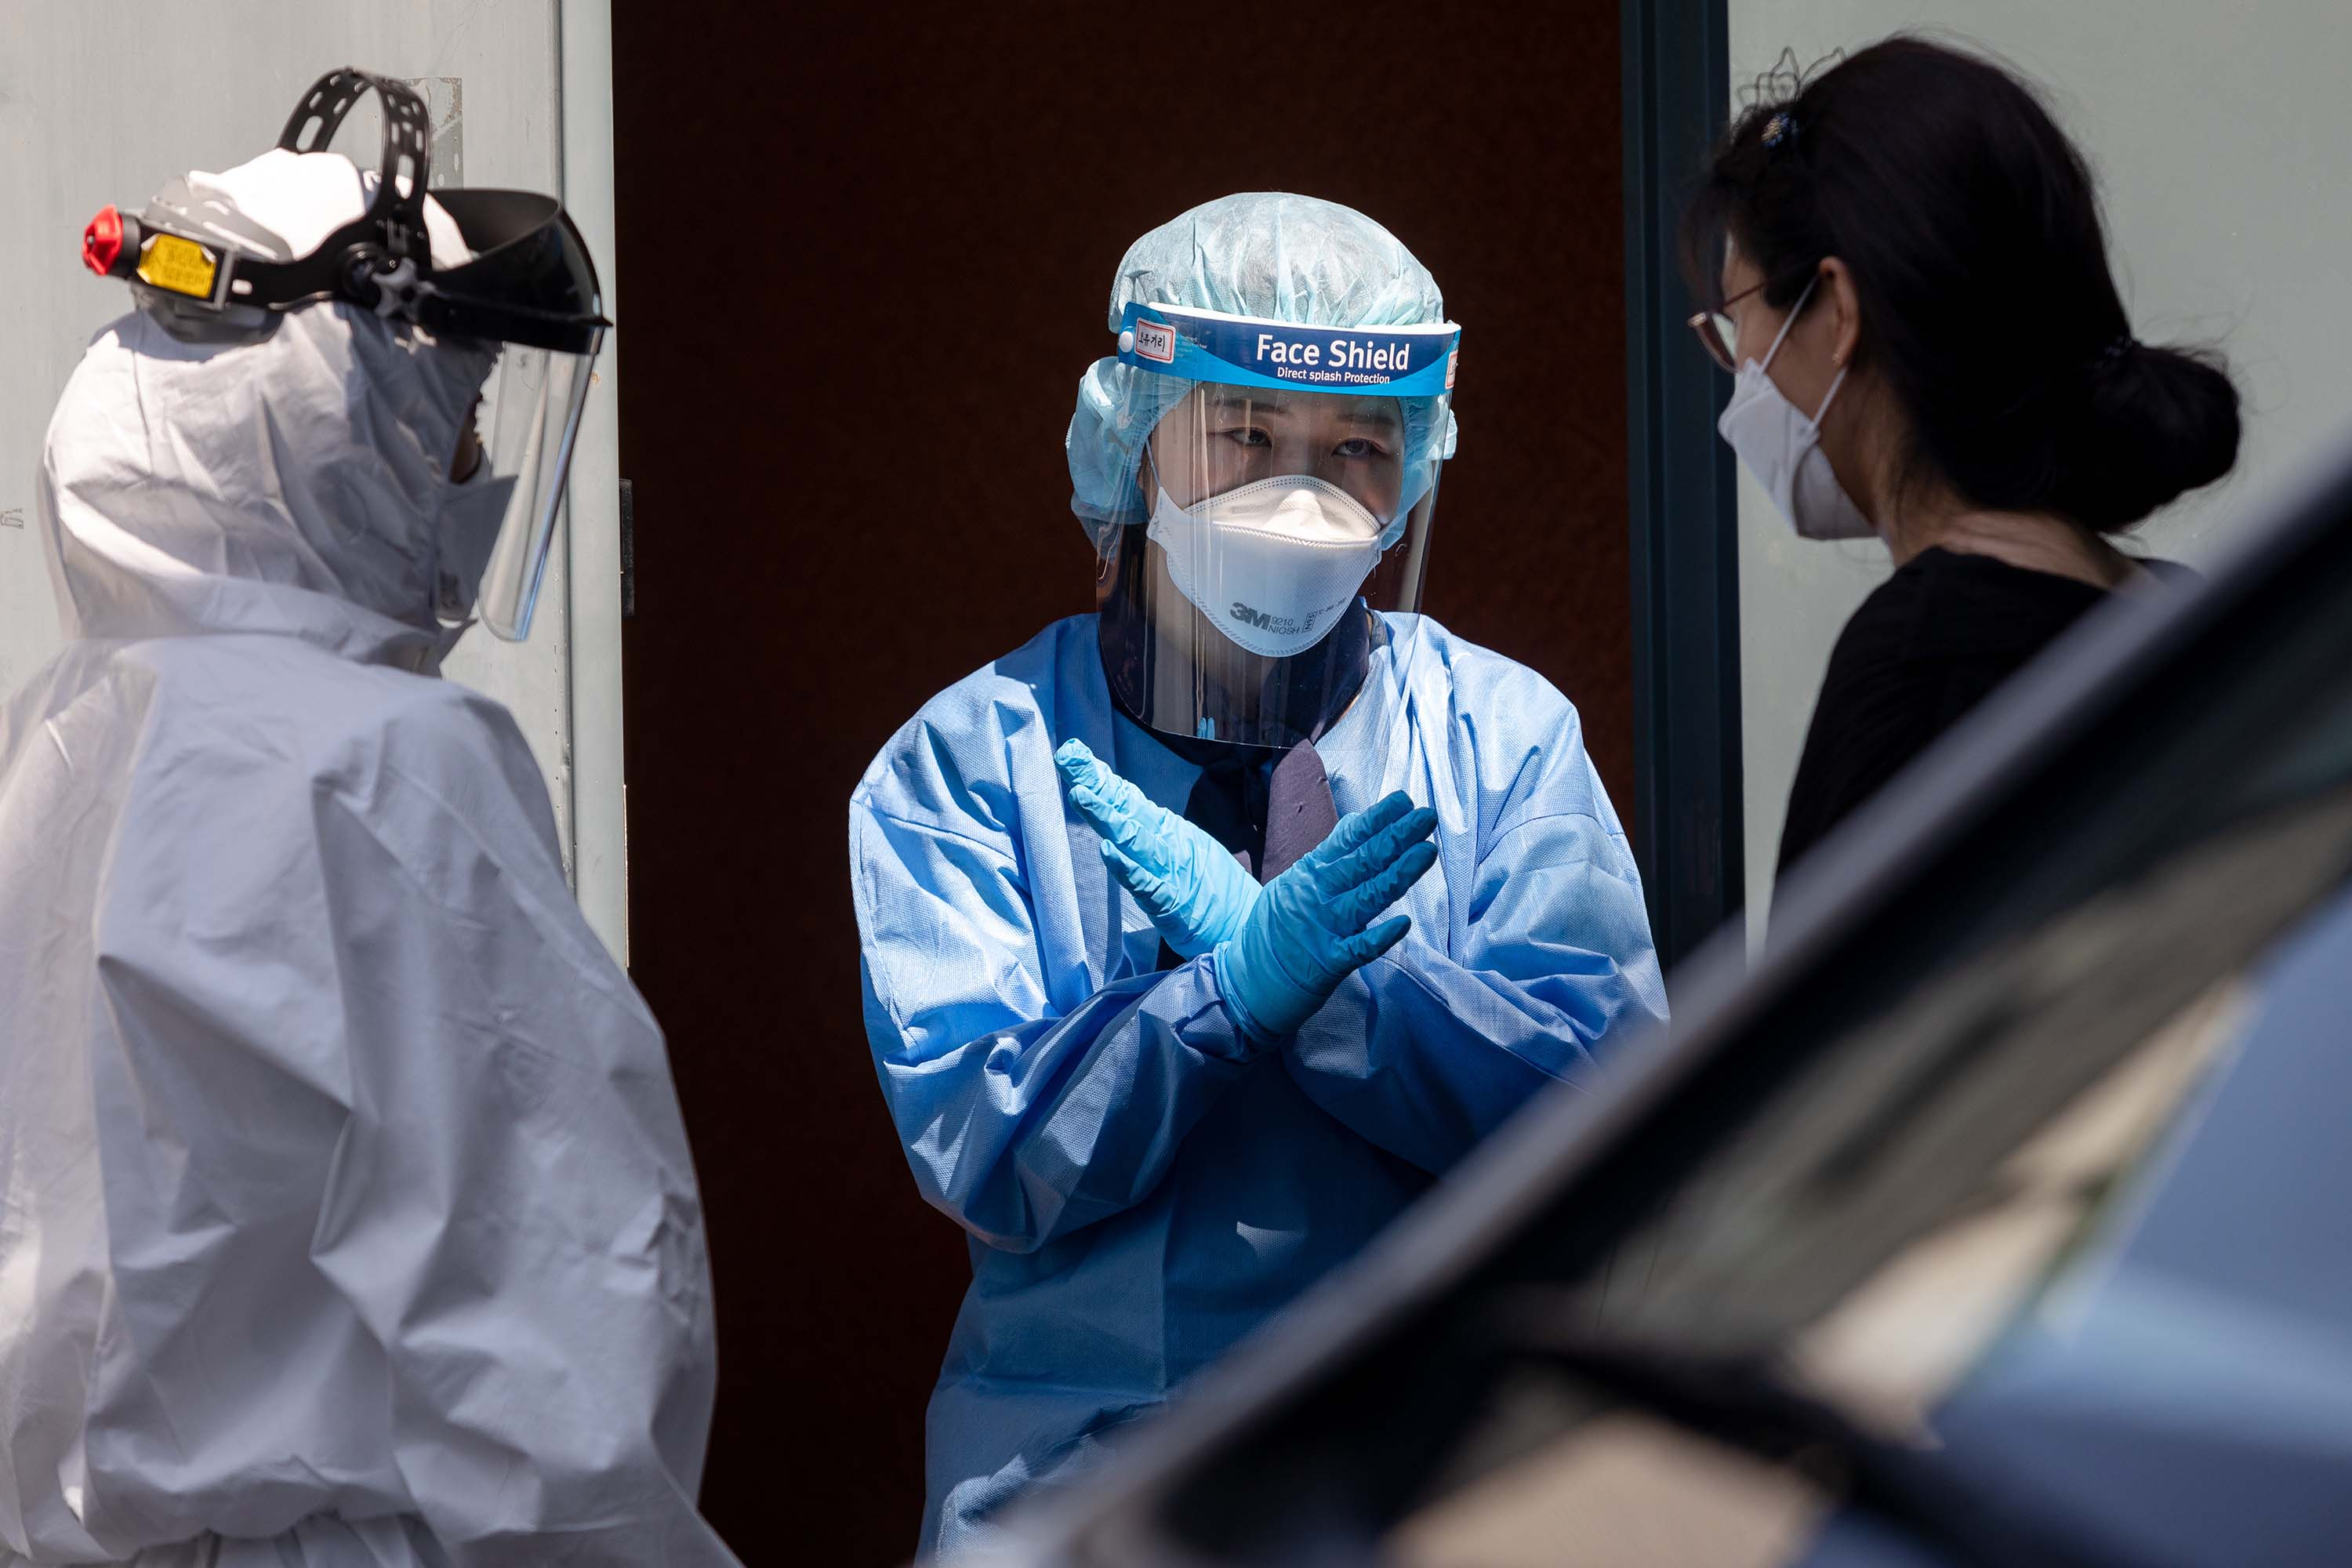 Medical workers speak with a person at a temporary coronavirus testing station in Seoul, South Korea, on June 11.